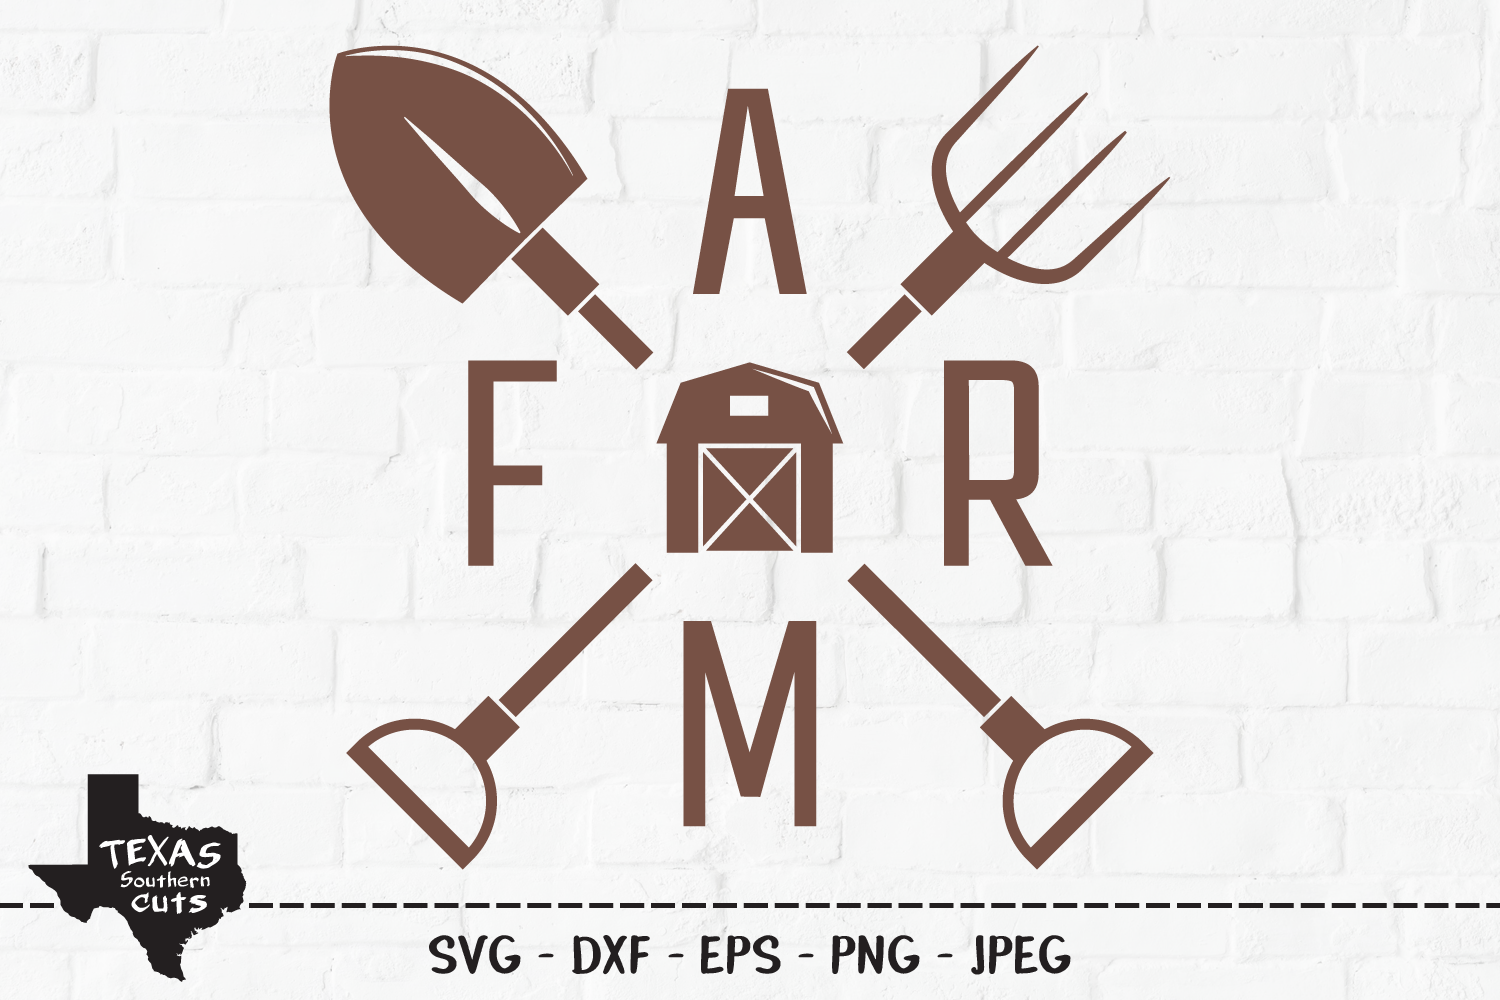 Download Free Farm Country Shirt Design Graphic By Texassoutherncuts for Cricut Explore, Silhouette and other cutting machines.